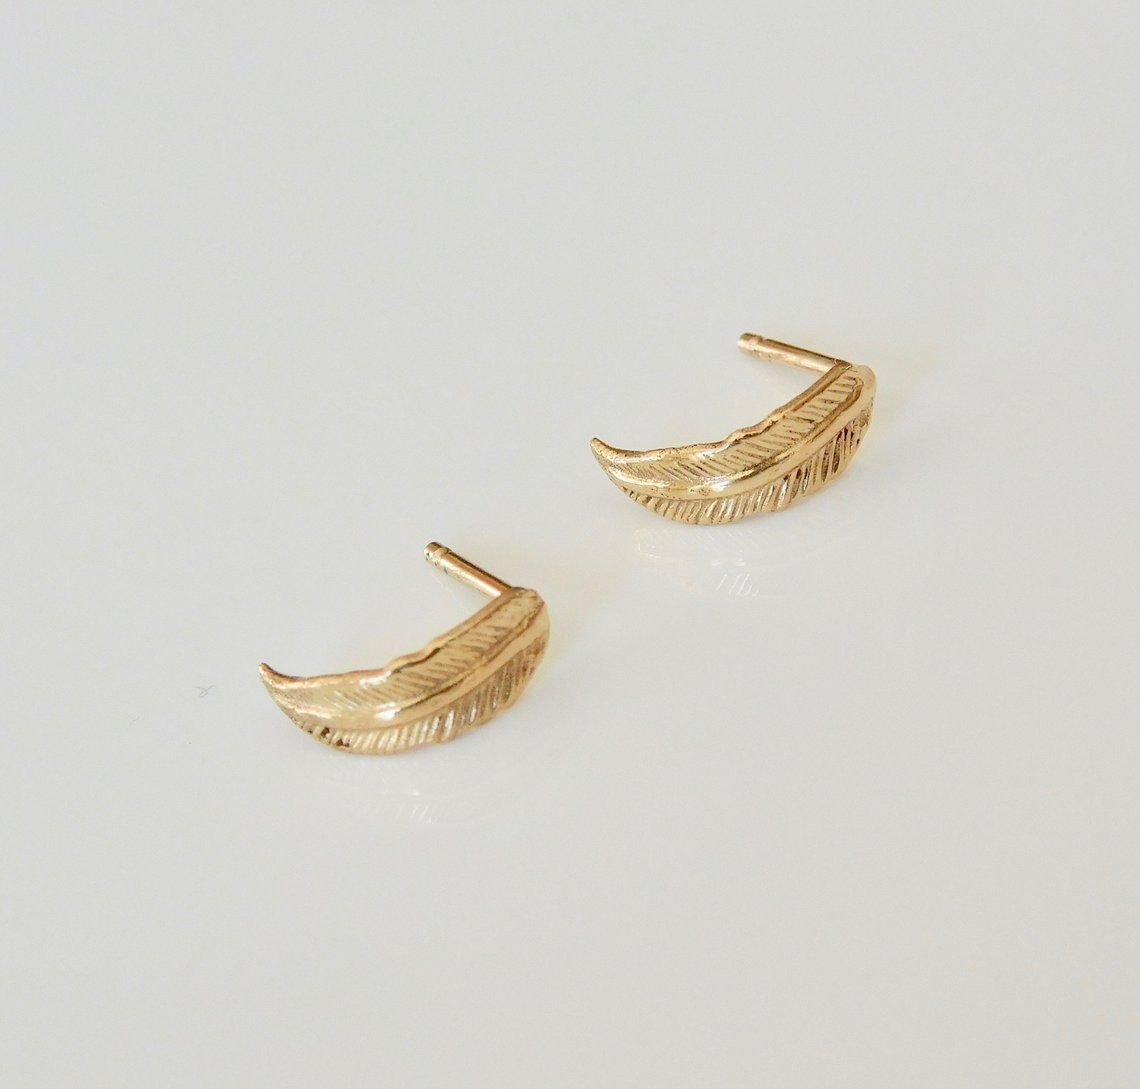 14k Gold Feather Stud Earrings Gold Feather Earrings Gold Earrings Studs Feather Stud Earrings